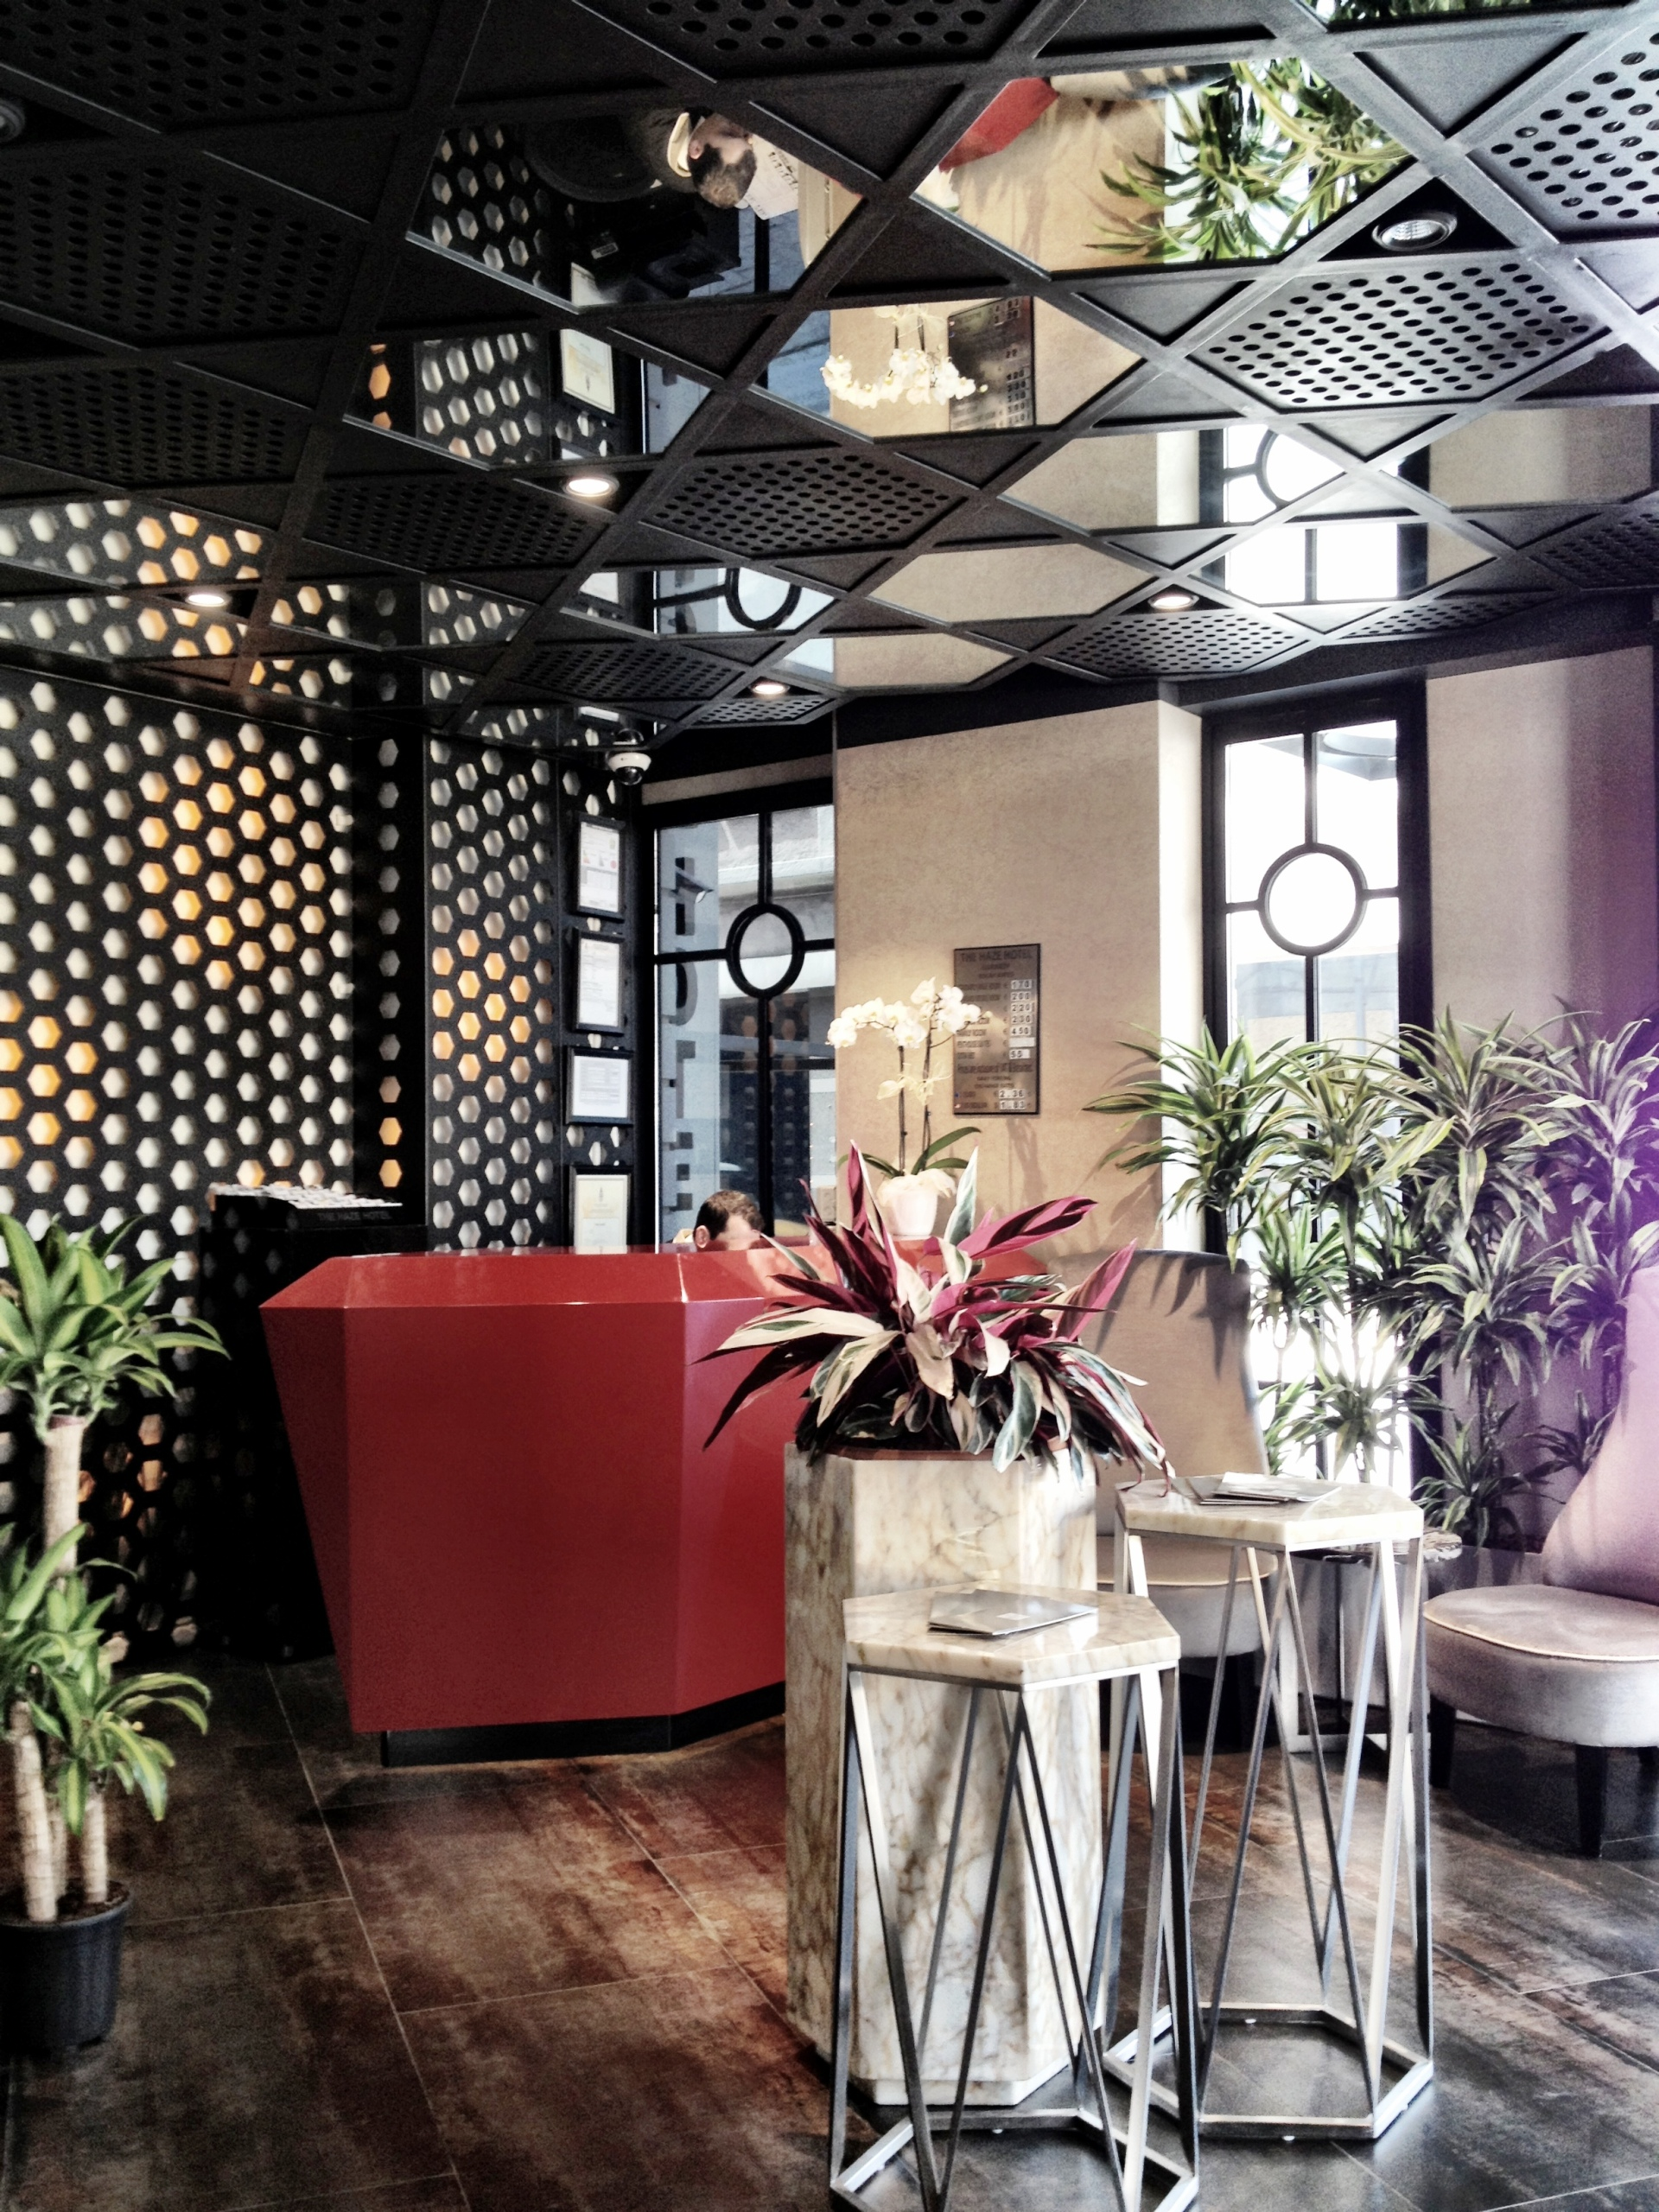 The Haze Hotel Karakoy lobby